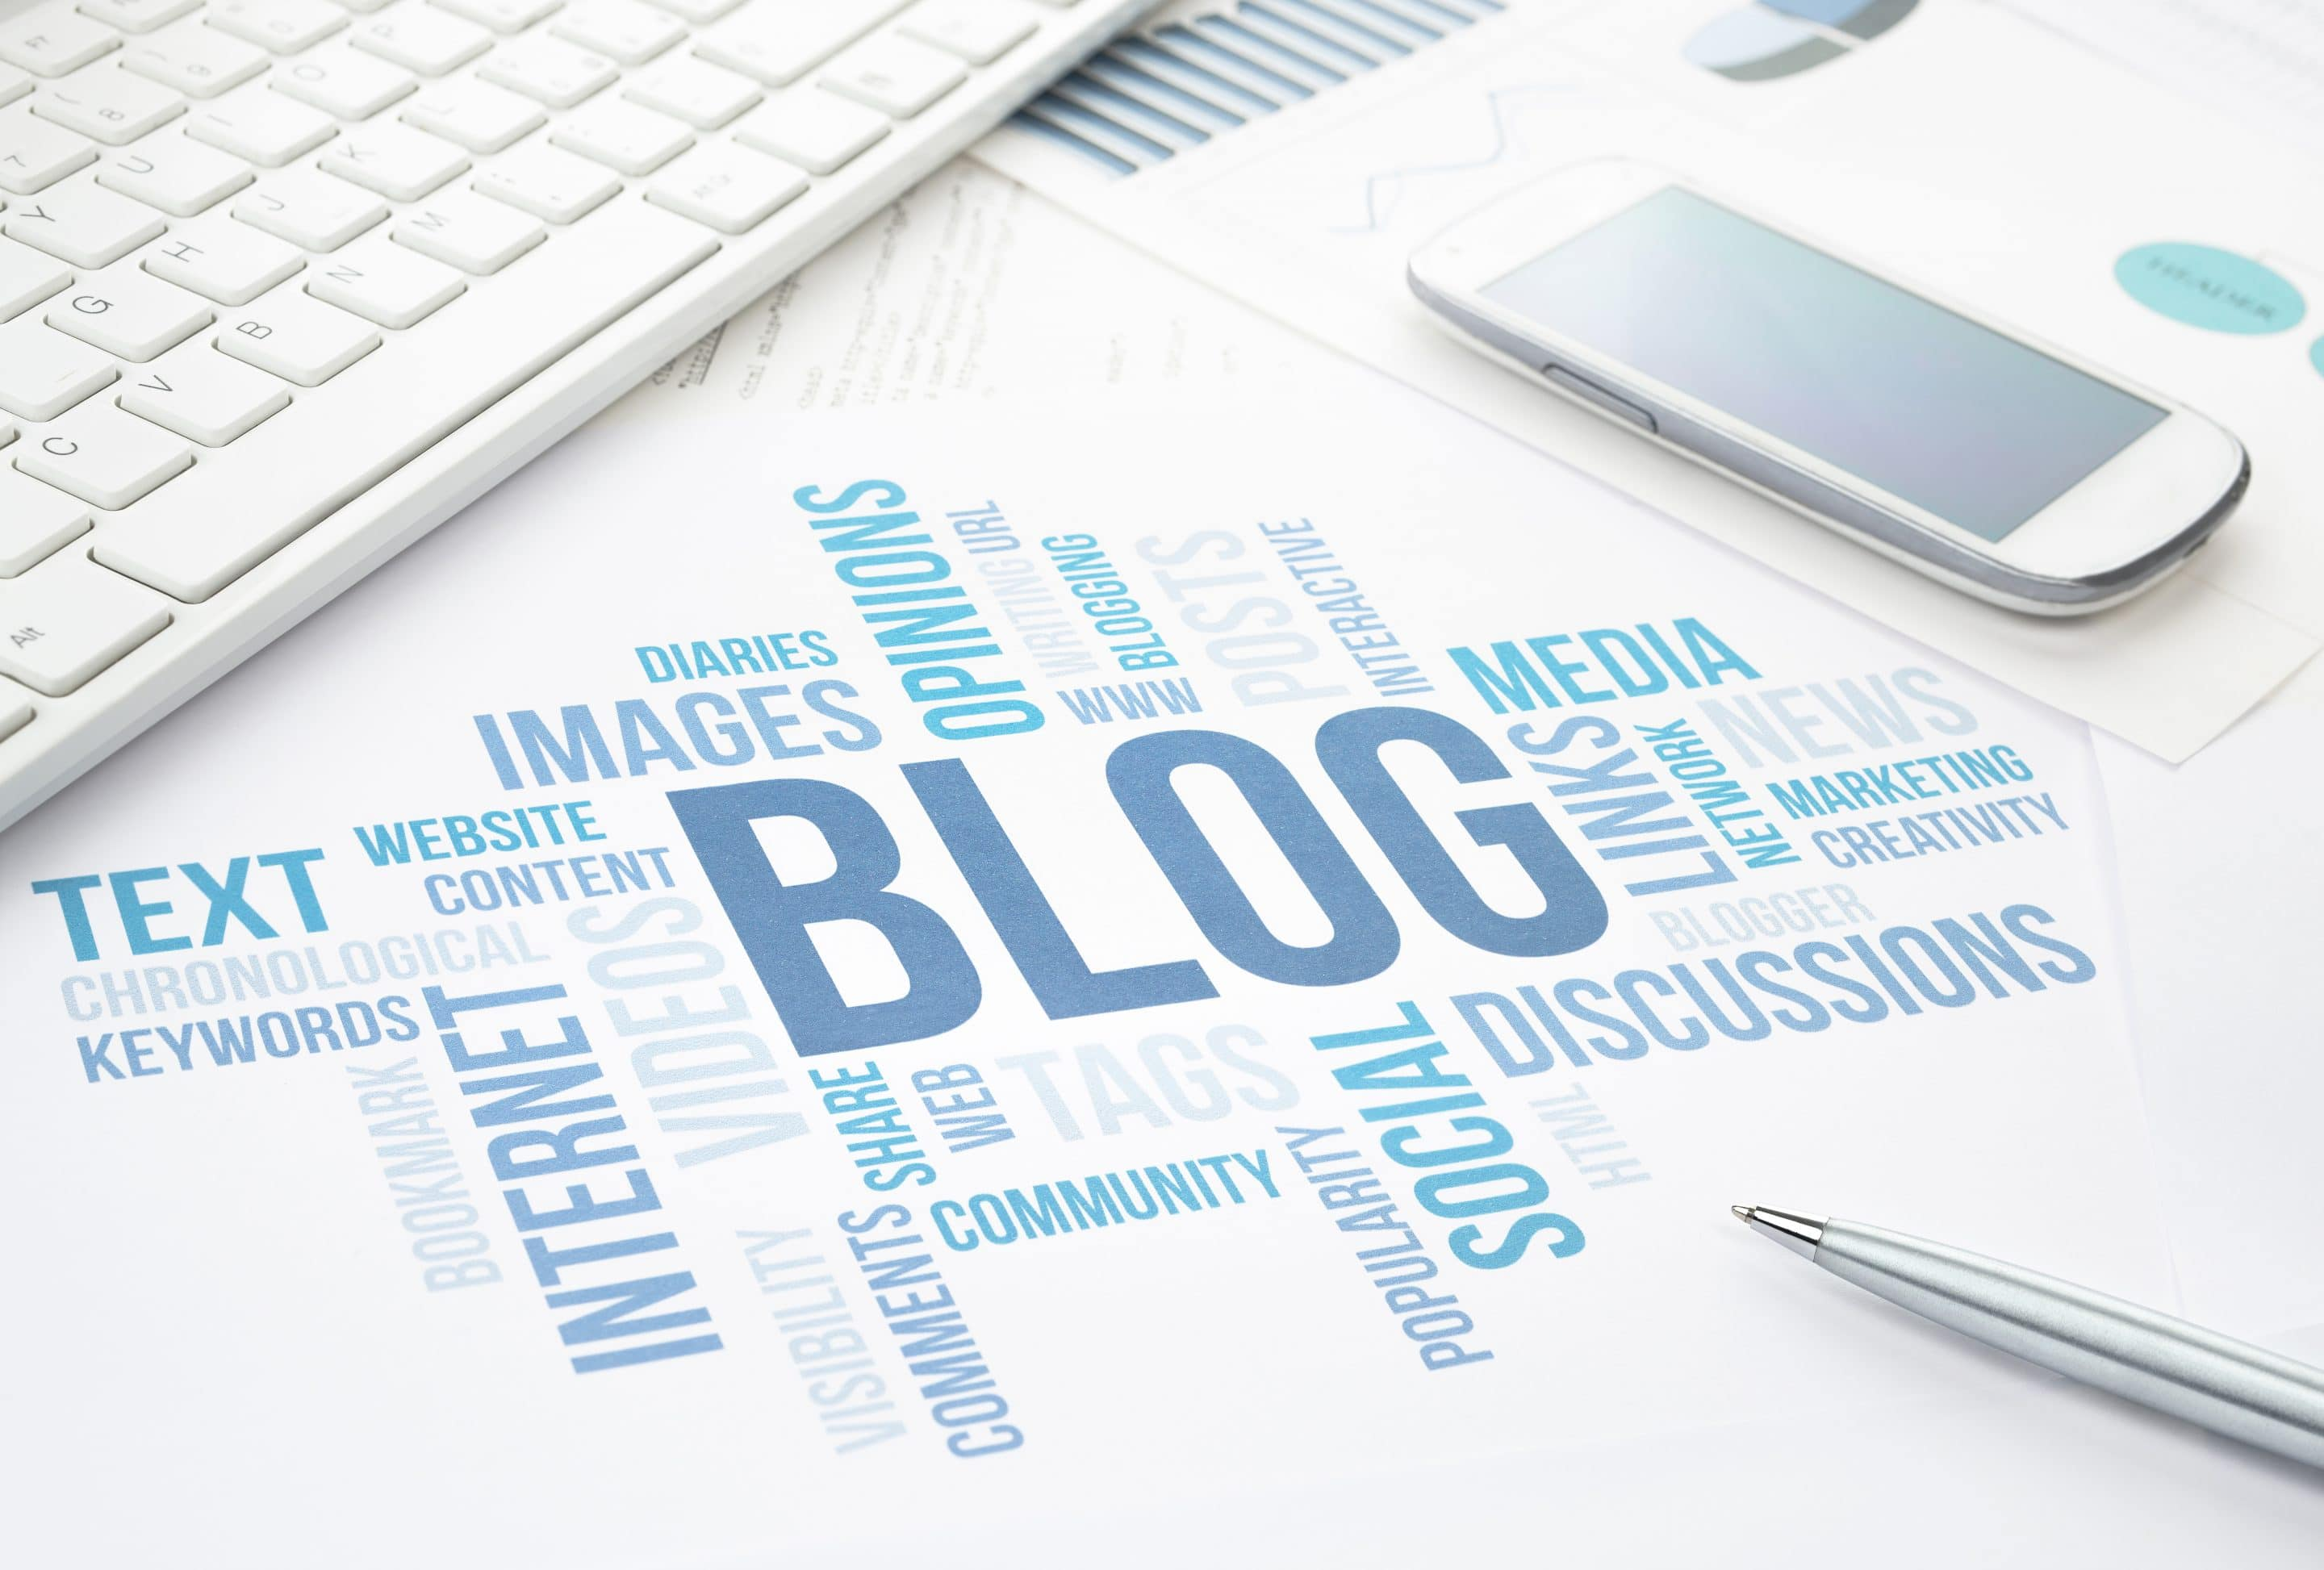 Blogging for SEO: The Anatomy of a Blog Post